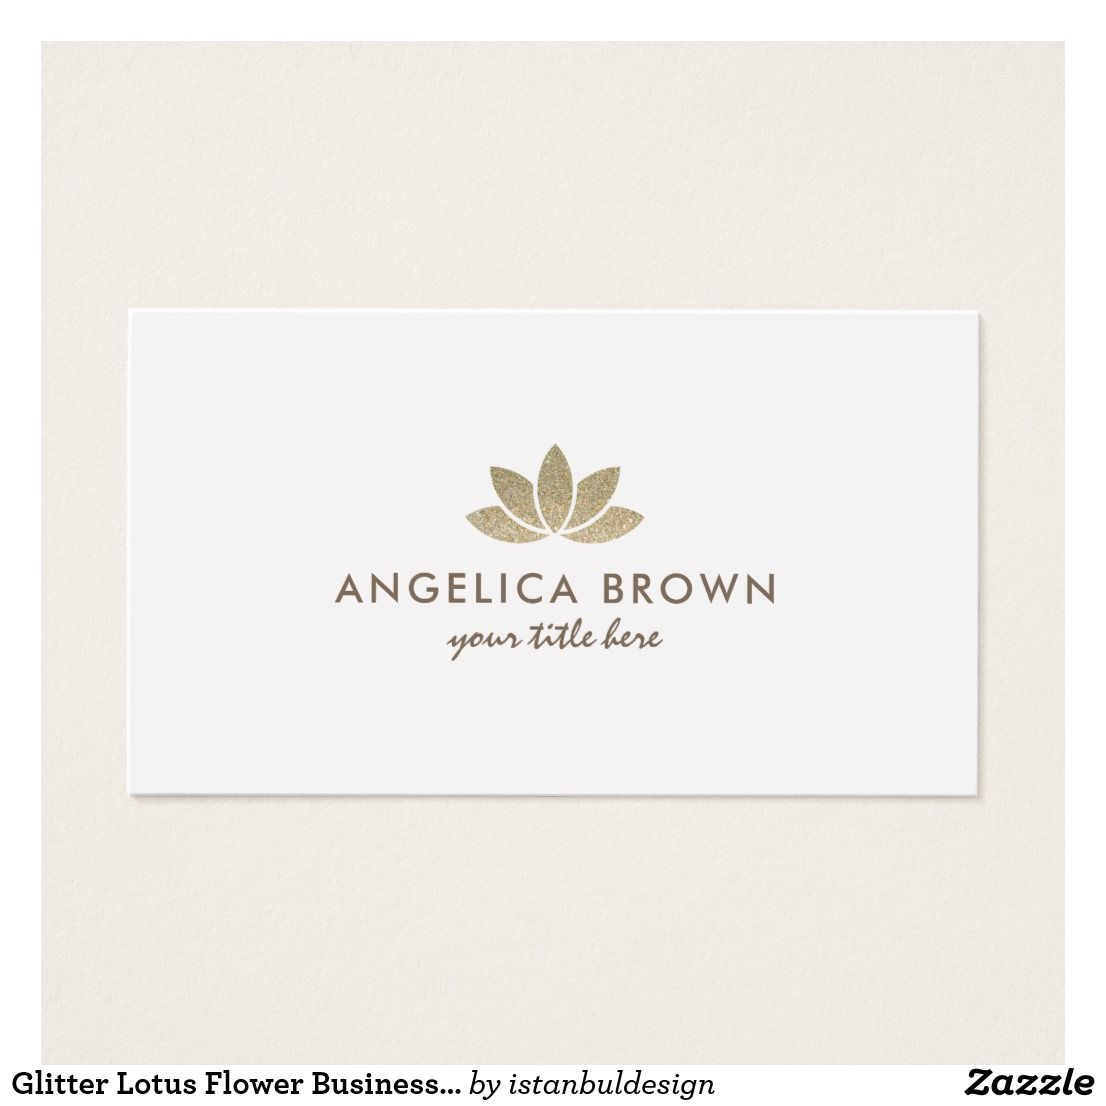 Glitter Lotus Flower Business Card | Business cards and Business